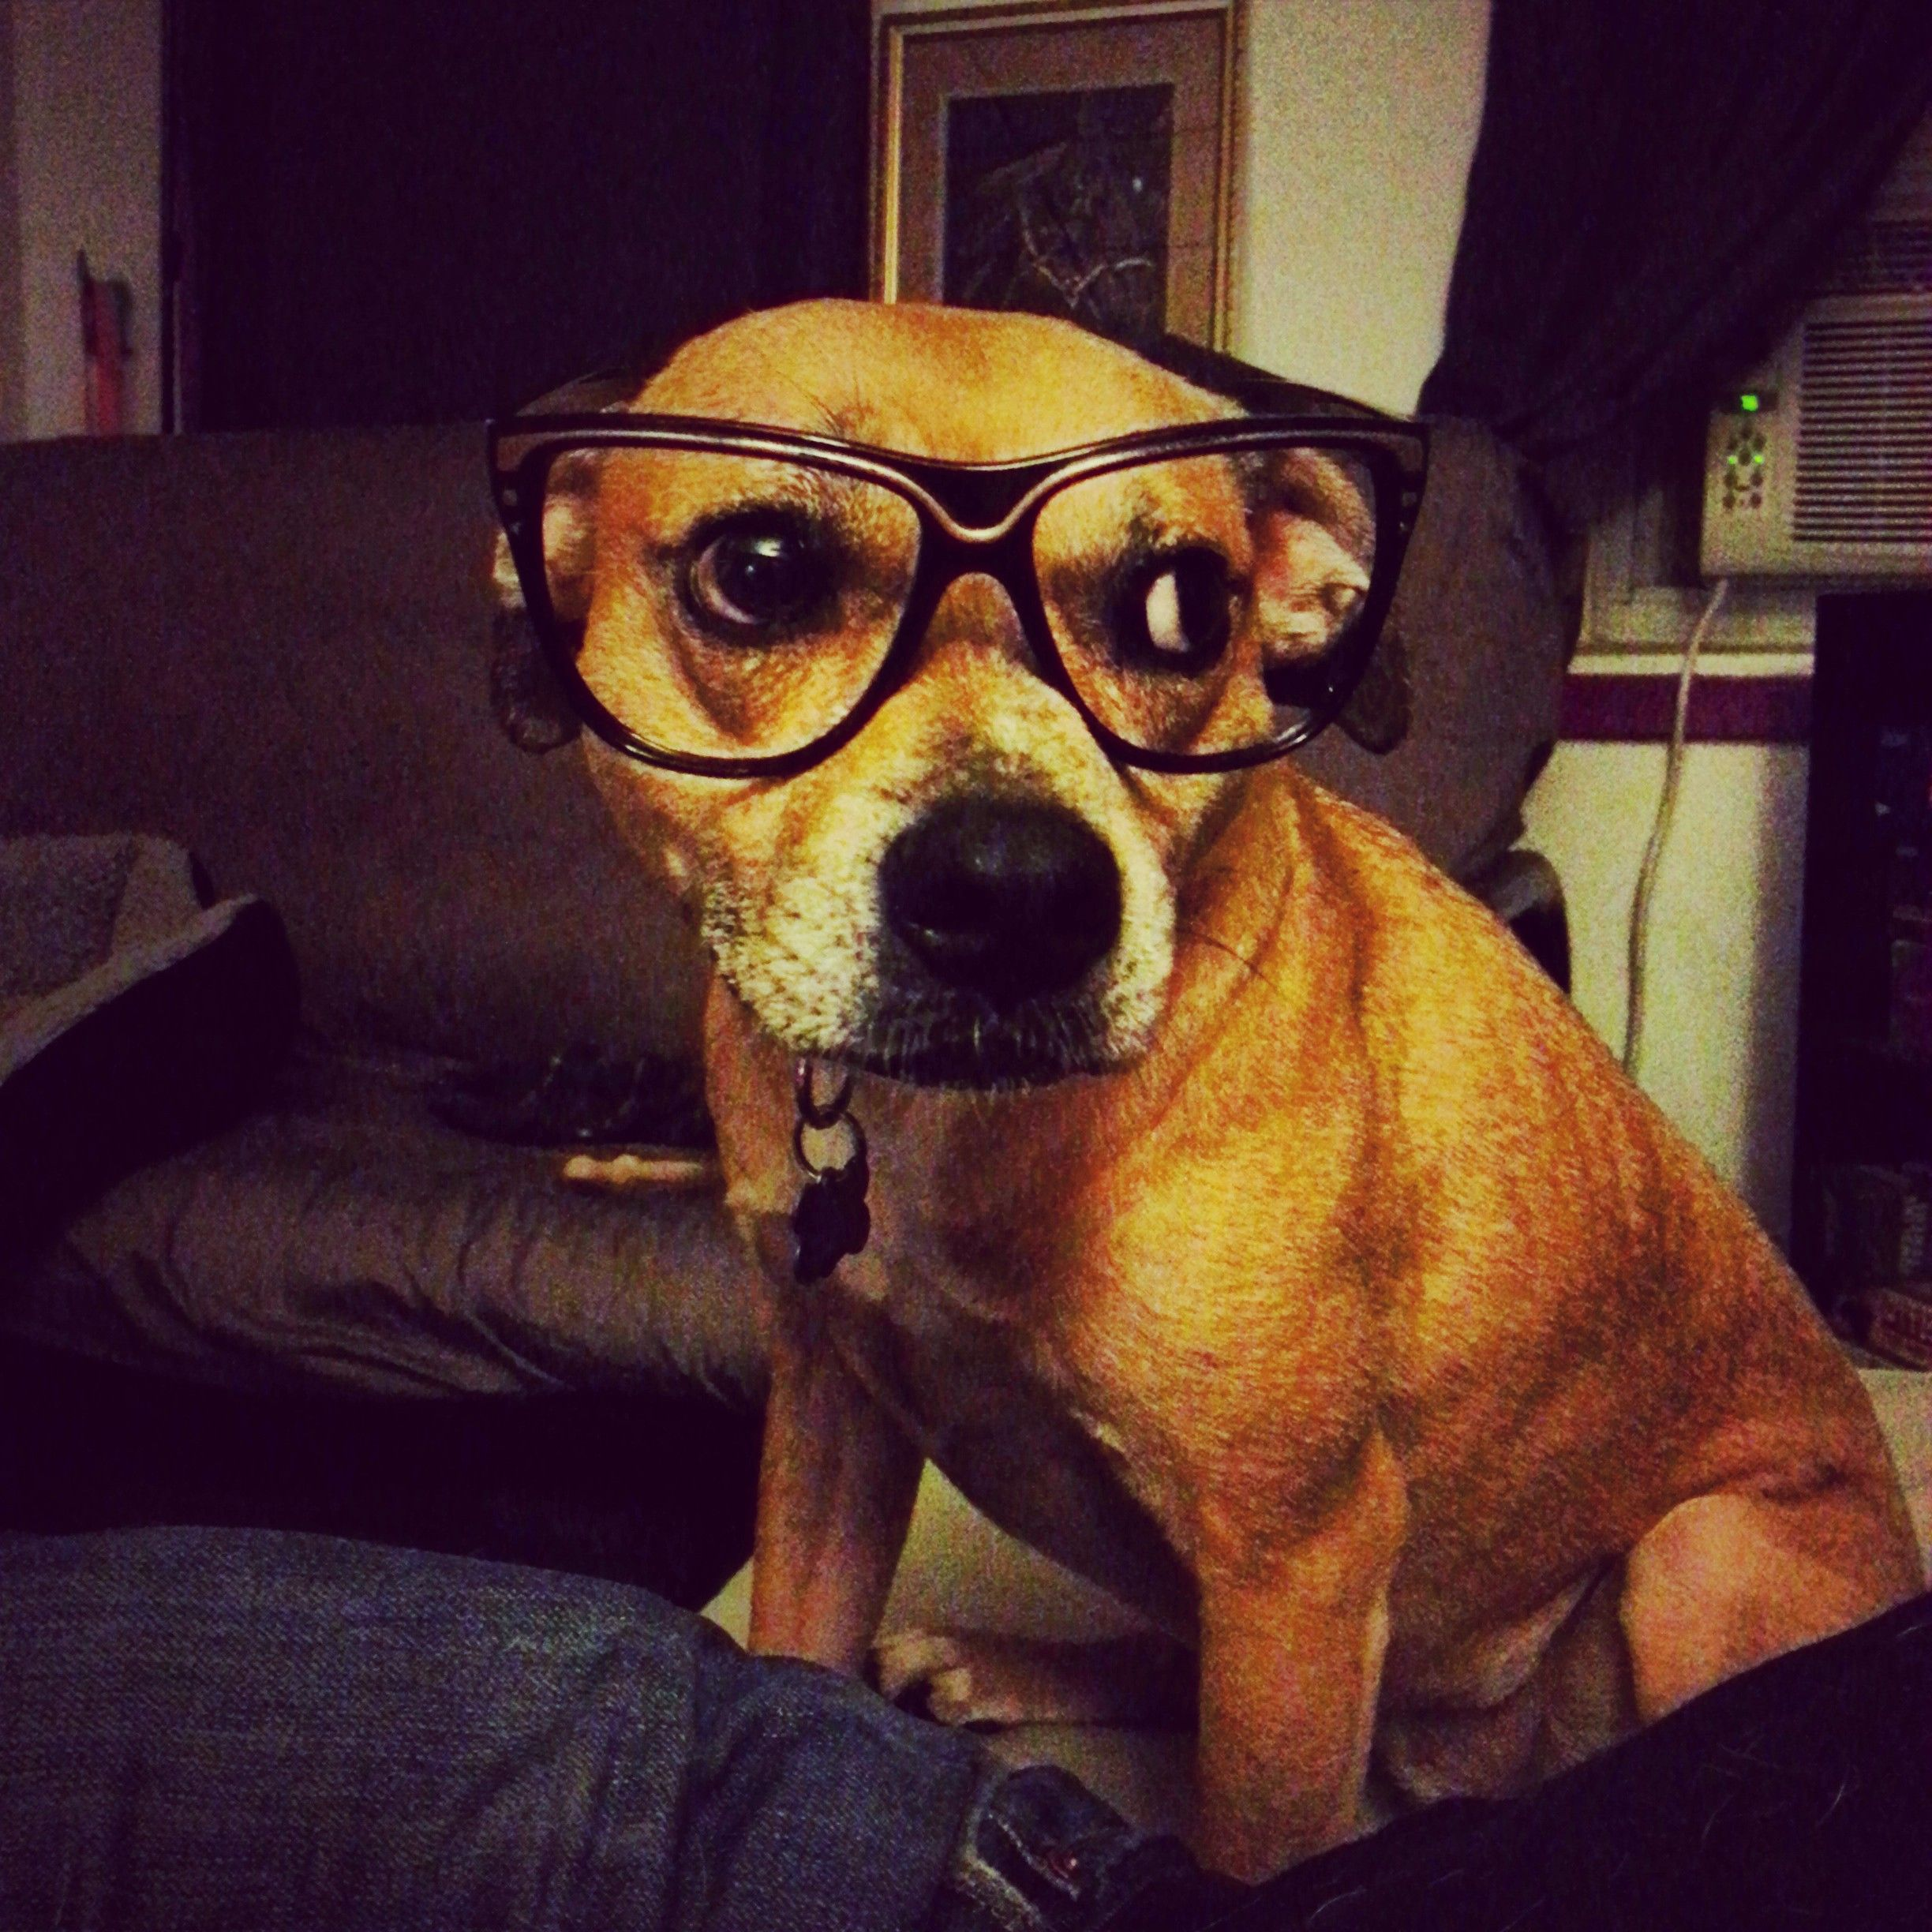 Peanut is such a hipster nationaldressupyourpetday pet